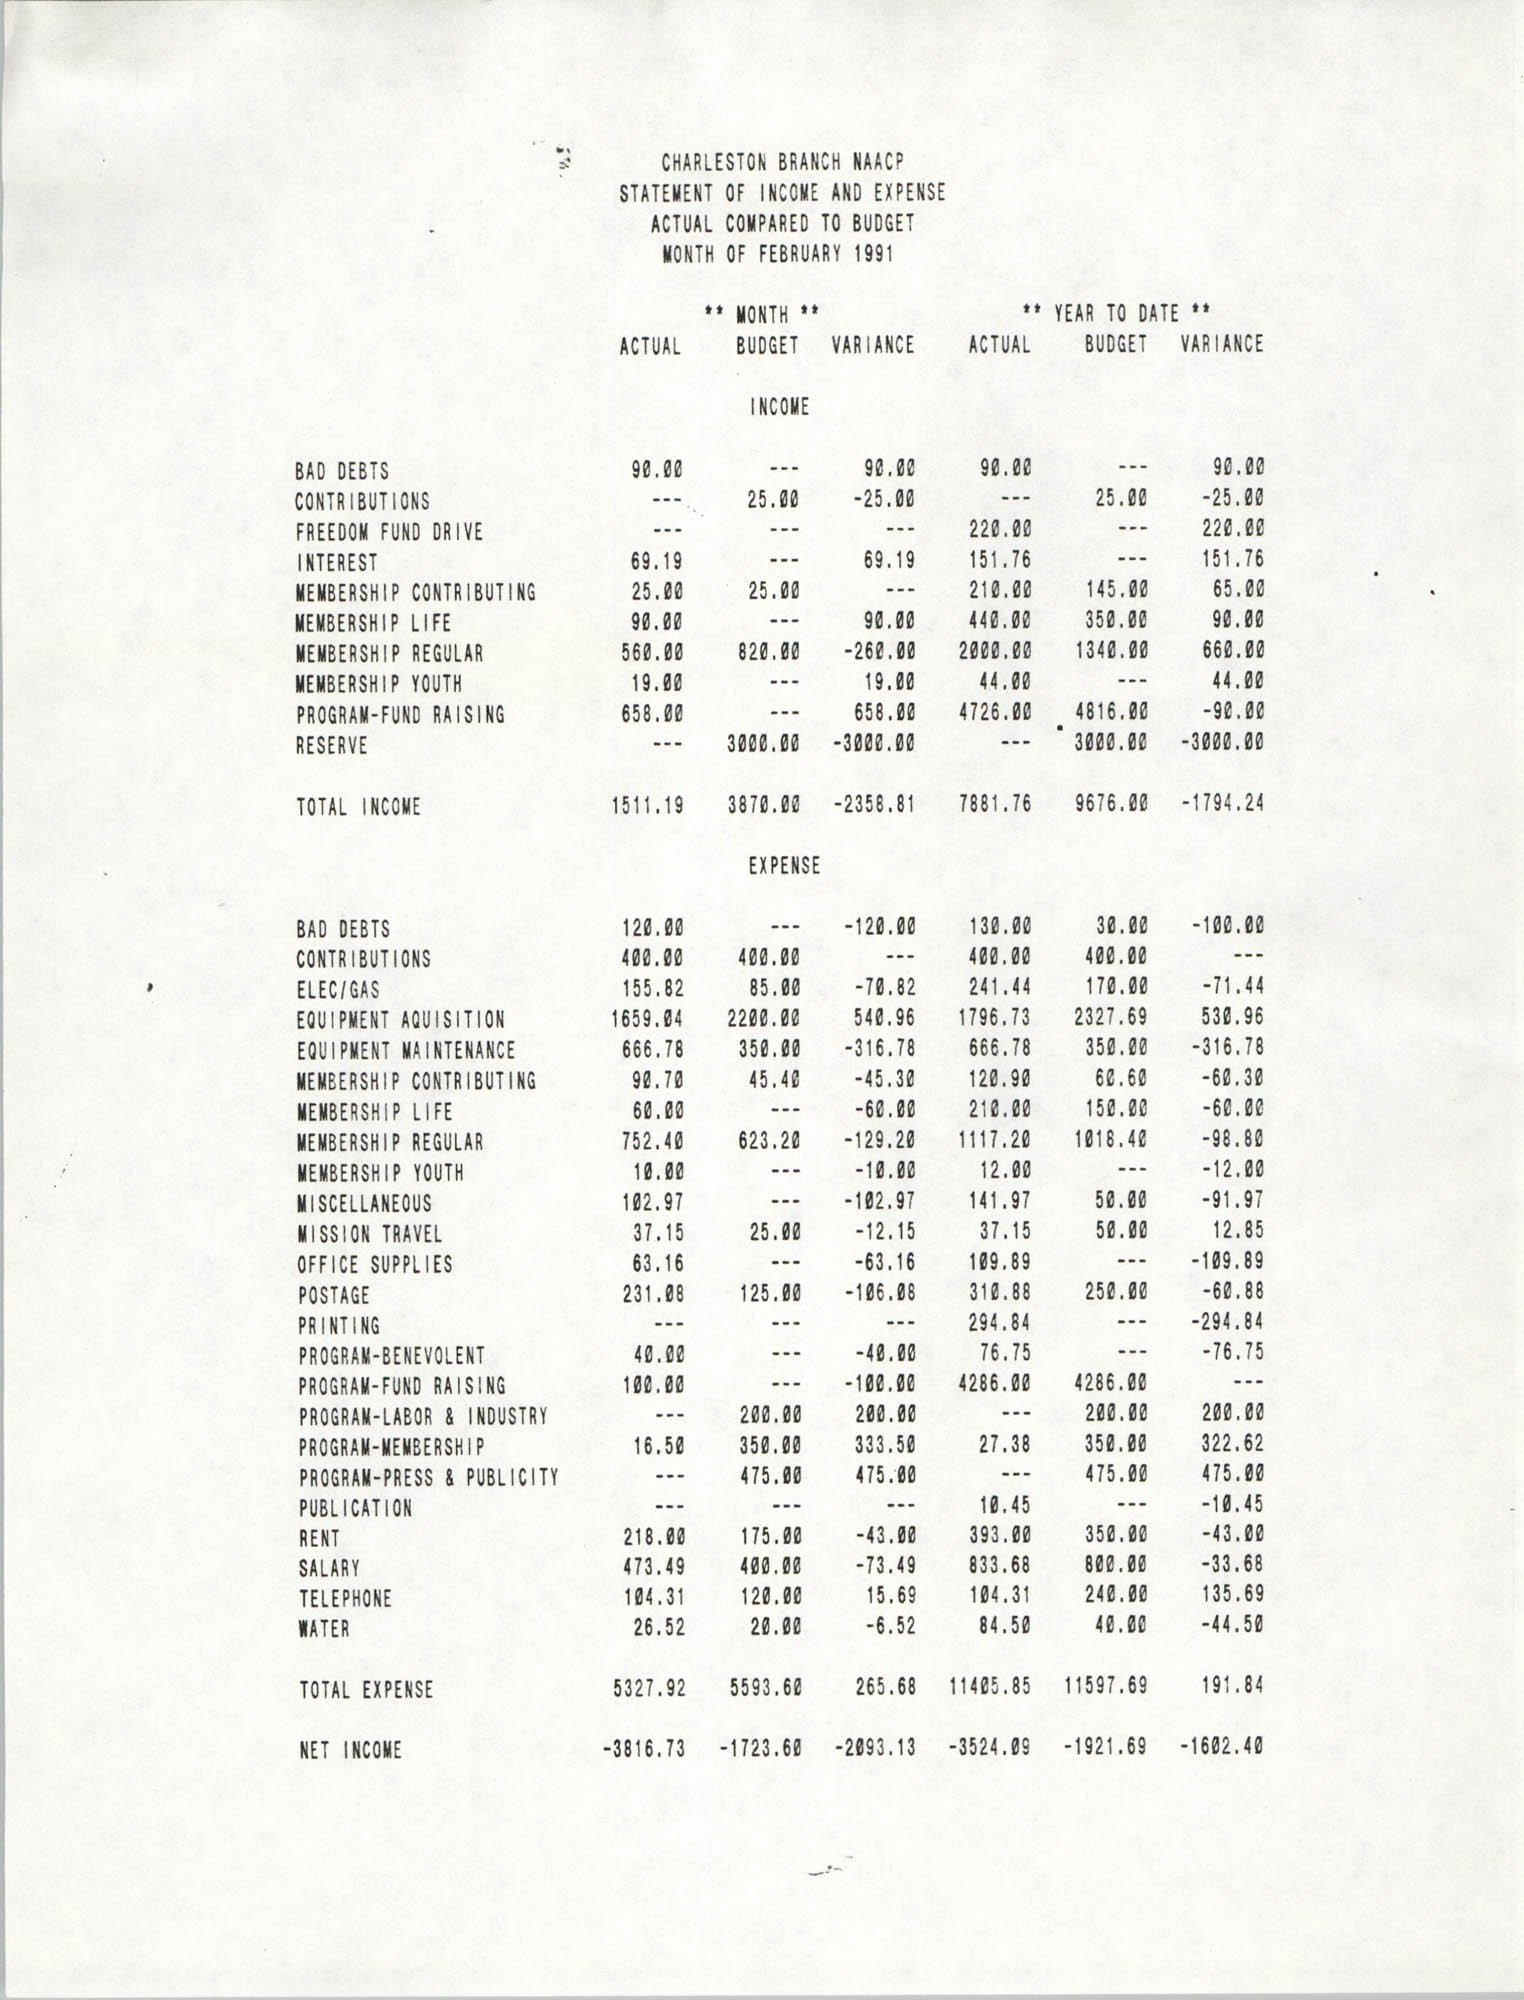 Charleston Branch of the NAACP Statement of Income and Expense, February 1991